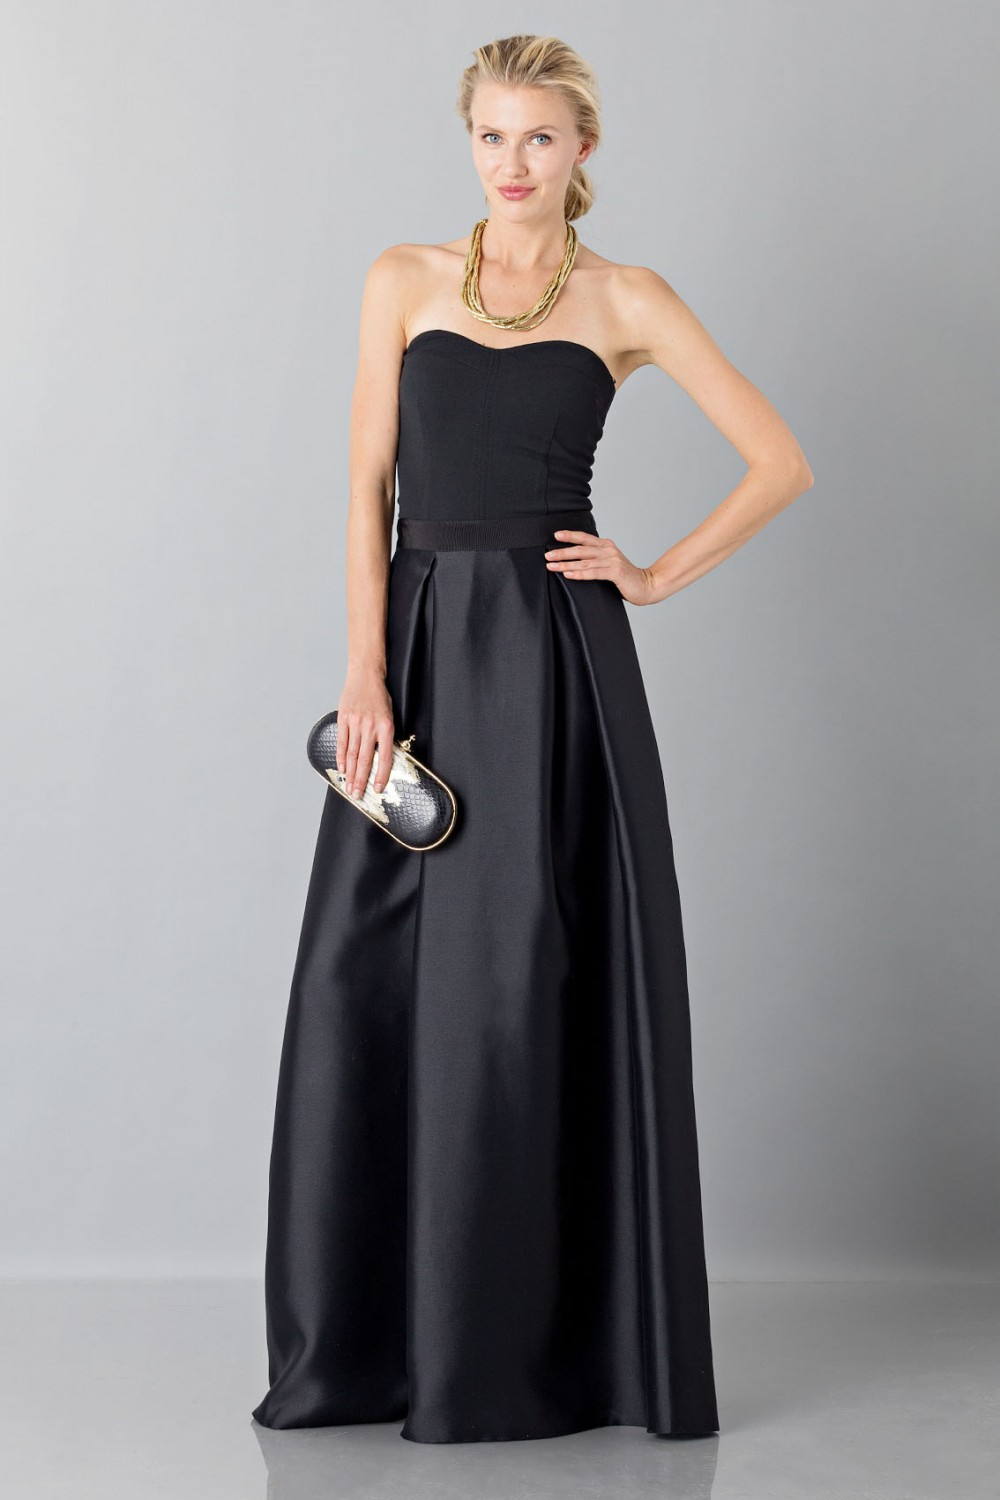 Full skirt and bustier top